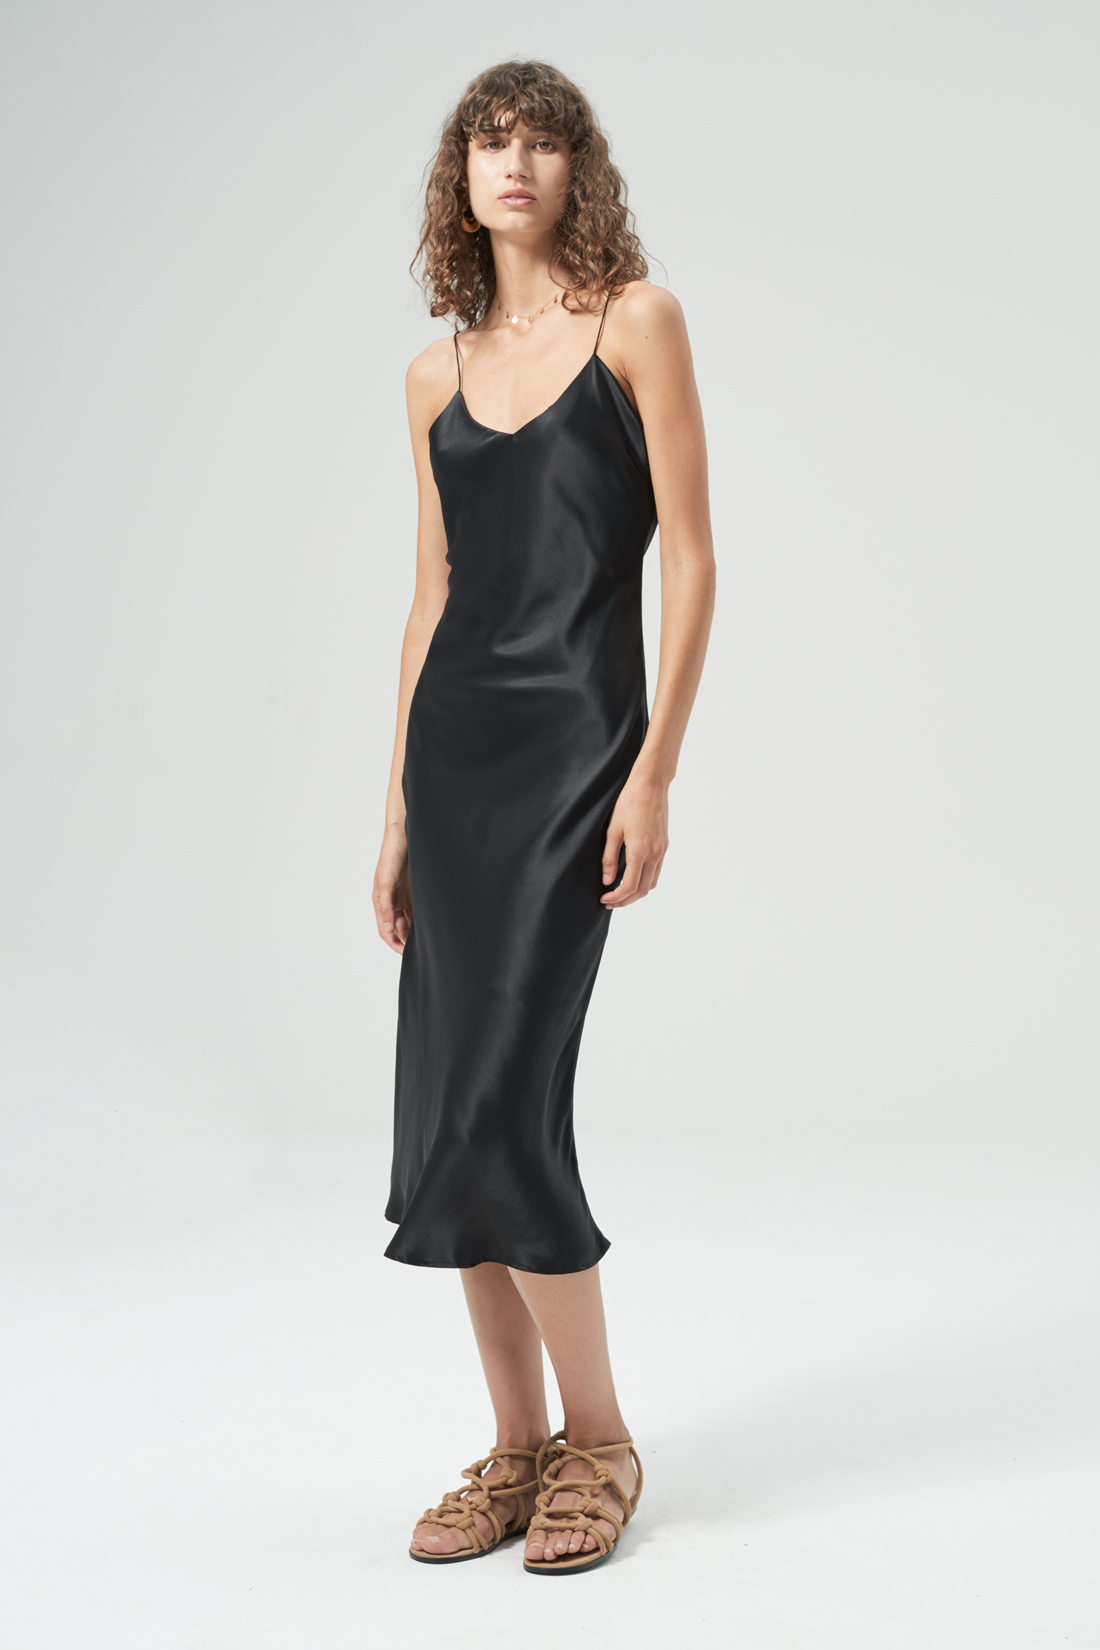 silk dresses demi silk dress black. $249.00 tuwfisv